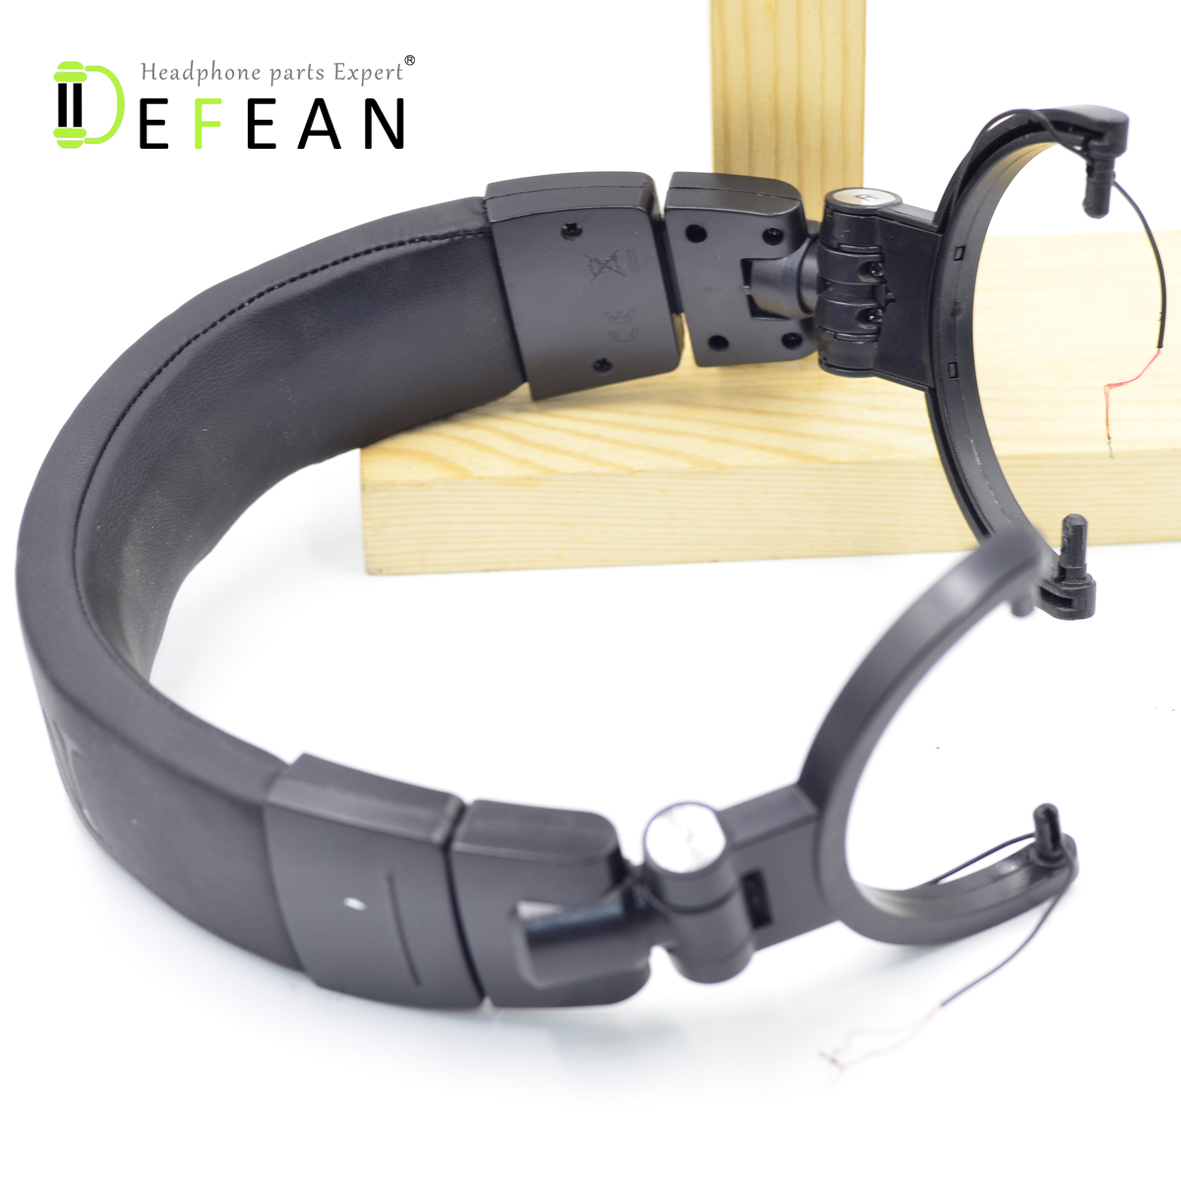 Defean Cushion-Hook Headband Repair-Part Audio Technica Ath-M50 M50X for Ath-m50/M50x/M50s/Headphone title=